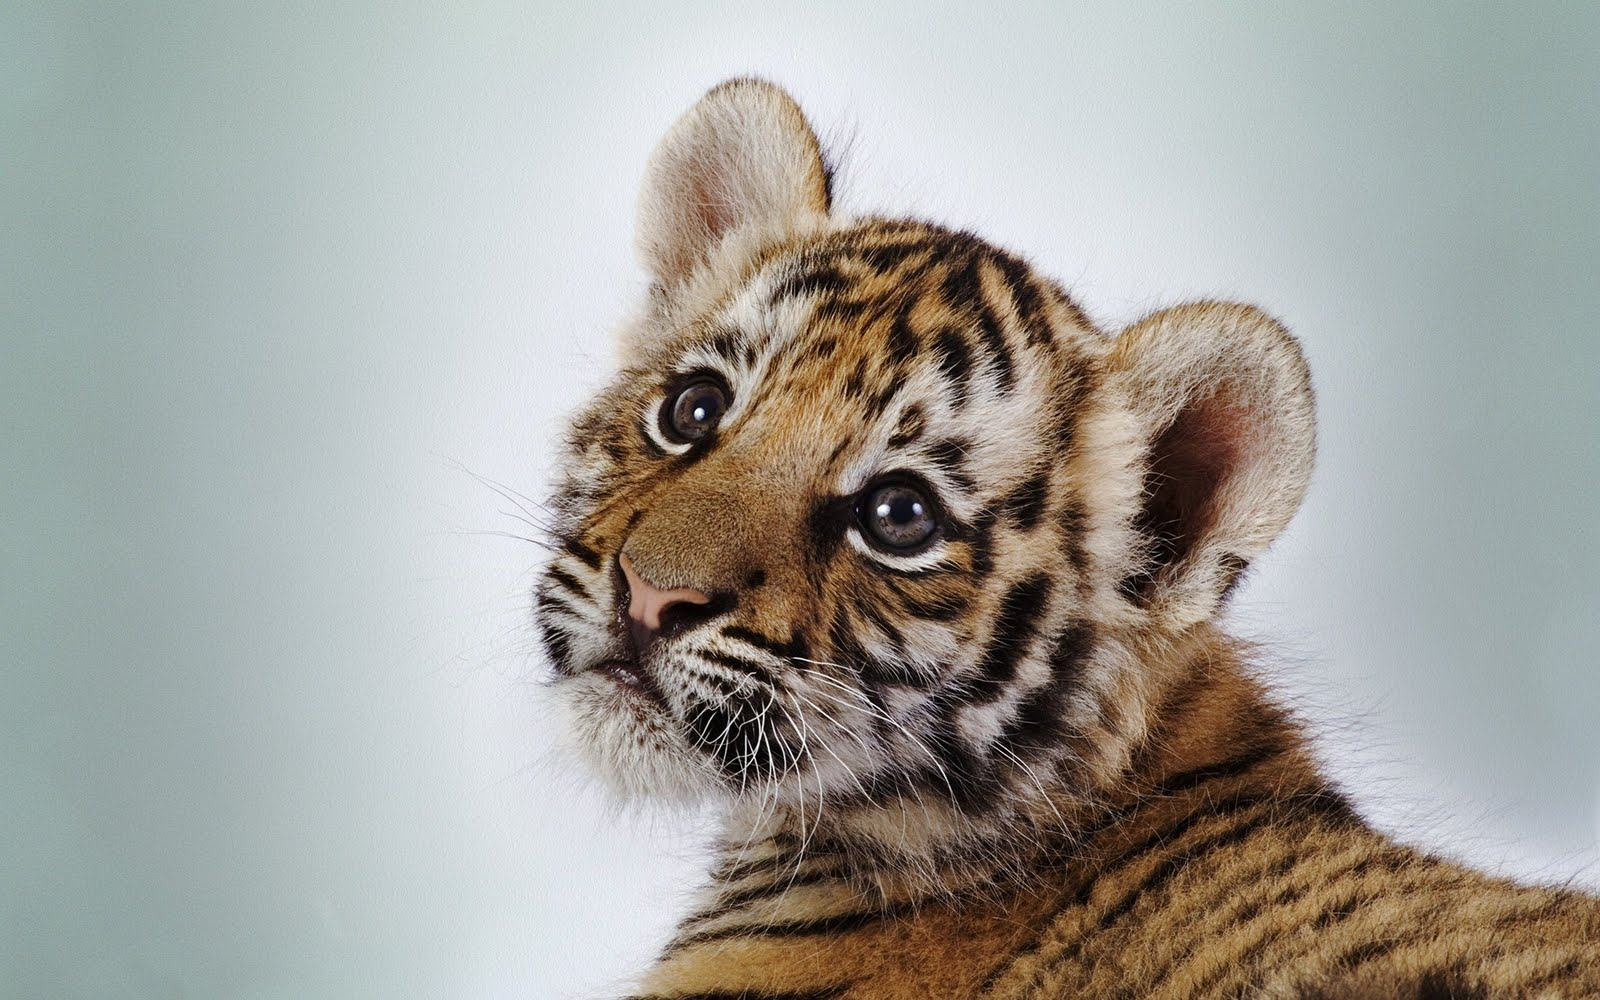 baby animals cute wild too sloth animal cutest tiger cuteness wallpapers adorable really tigers wildlife funny sweet hd tigar friends